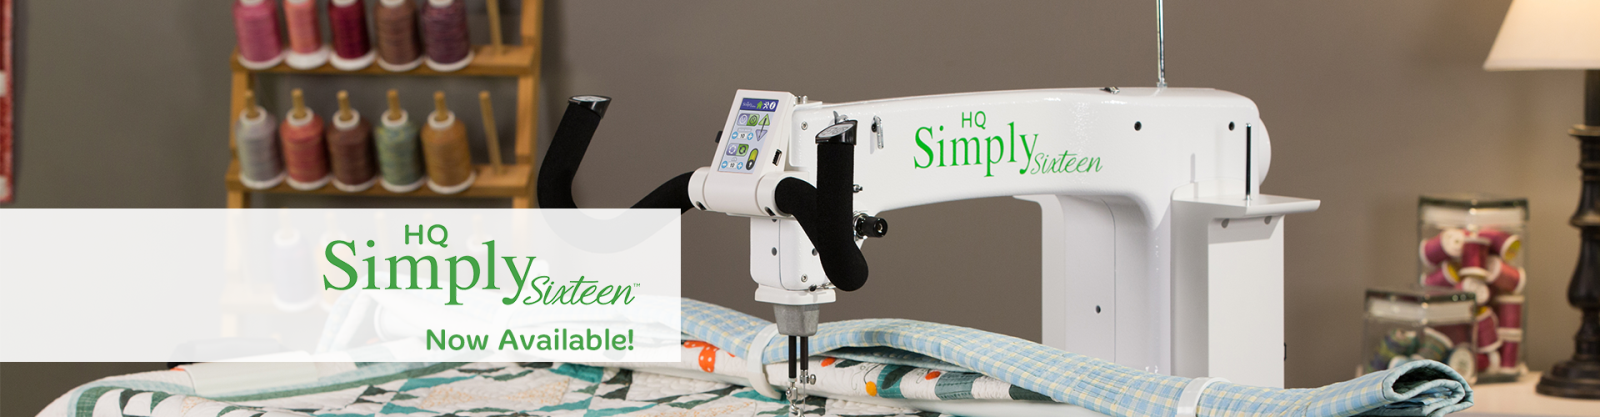 Handi Quilter - Simply Sixteen - Quilting Machine